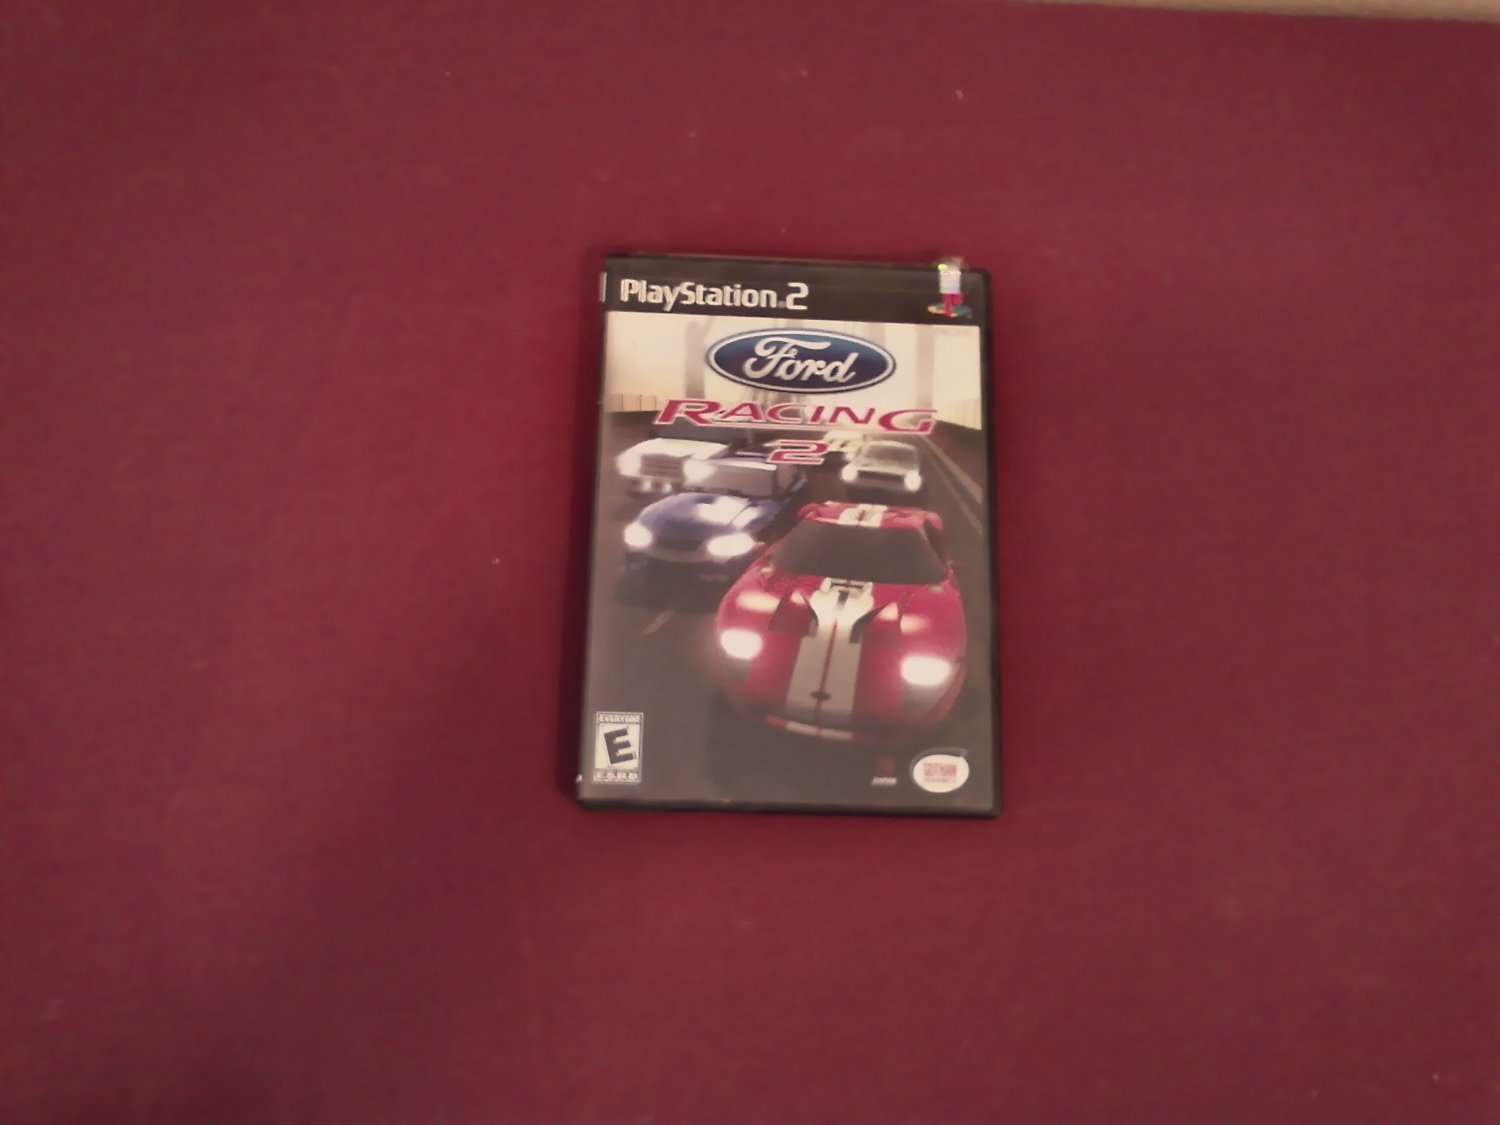 Ford Racing 2 PS2 PlayStation 2, Rated E Gotham Games 2003 DVD Game (mw)